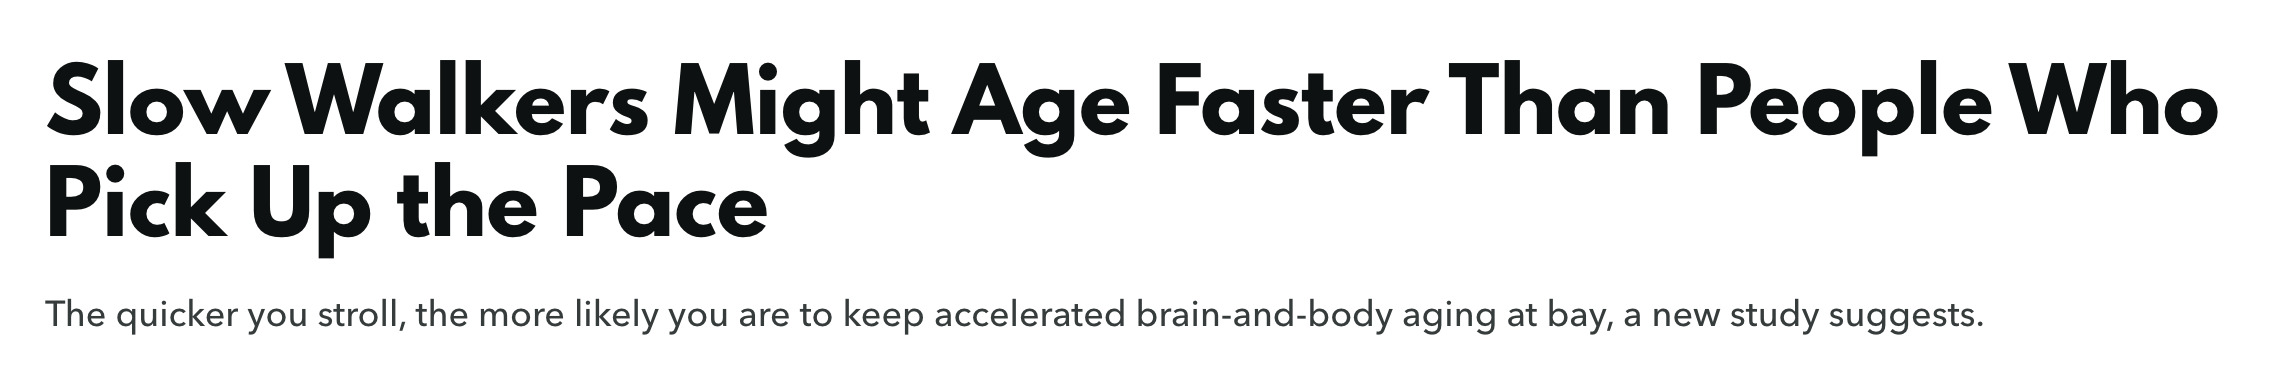 Caption reads: Slow walkers might age faster than people who pick up the pace. Smaller print: the quicker you stroll, the more likely you are to keep accelerated brain-and-body aging at bay, a new study suggests.